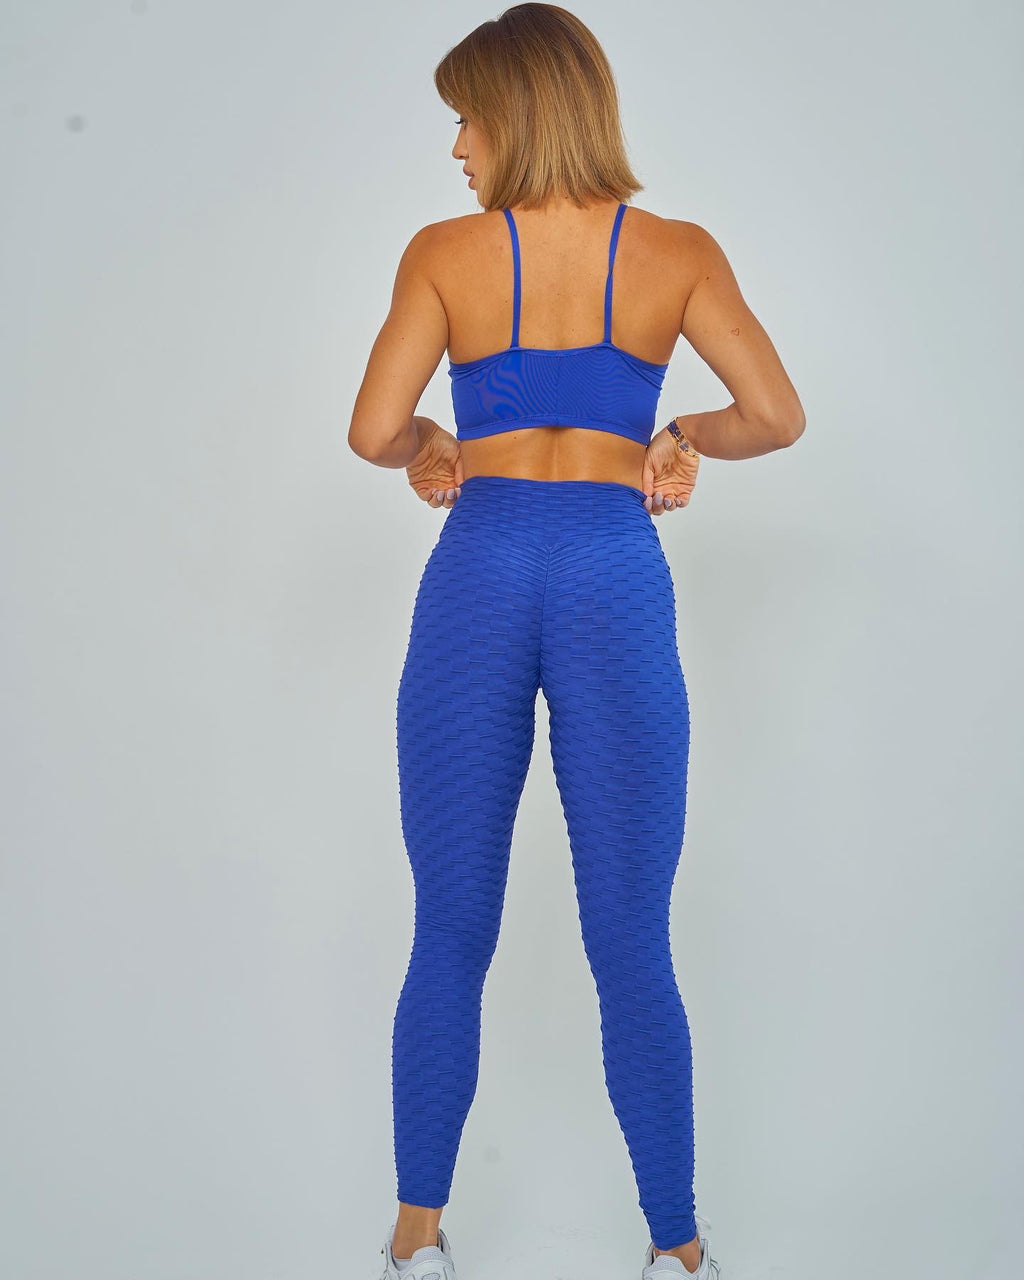 Aria Legging & Venus Top